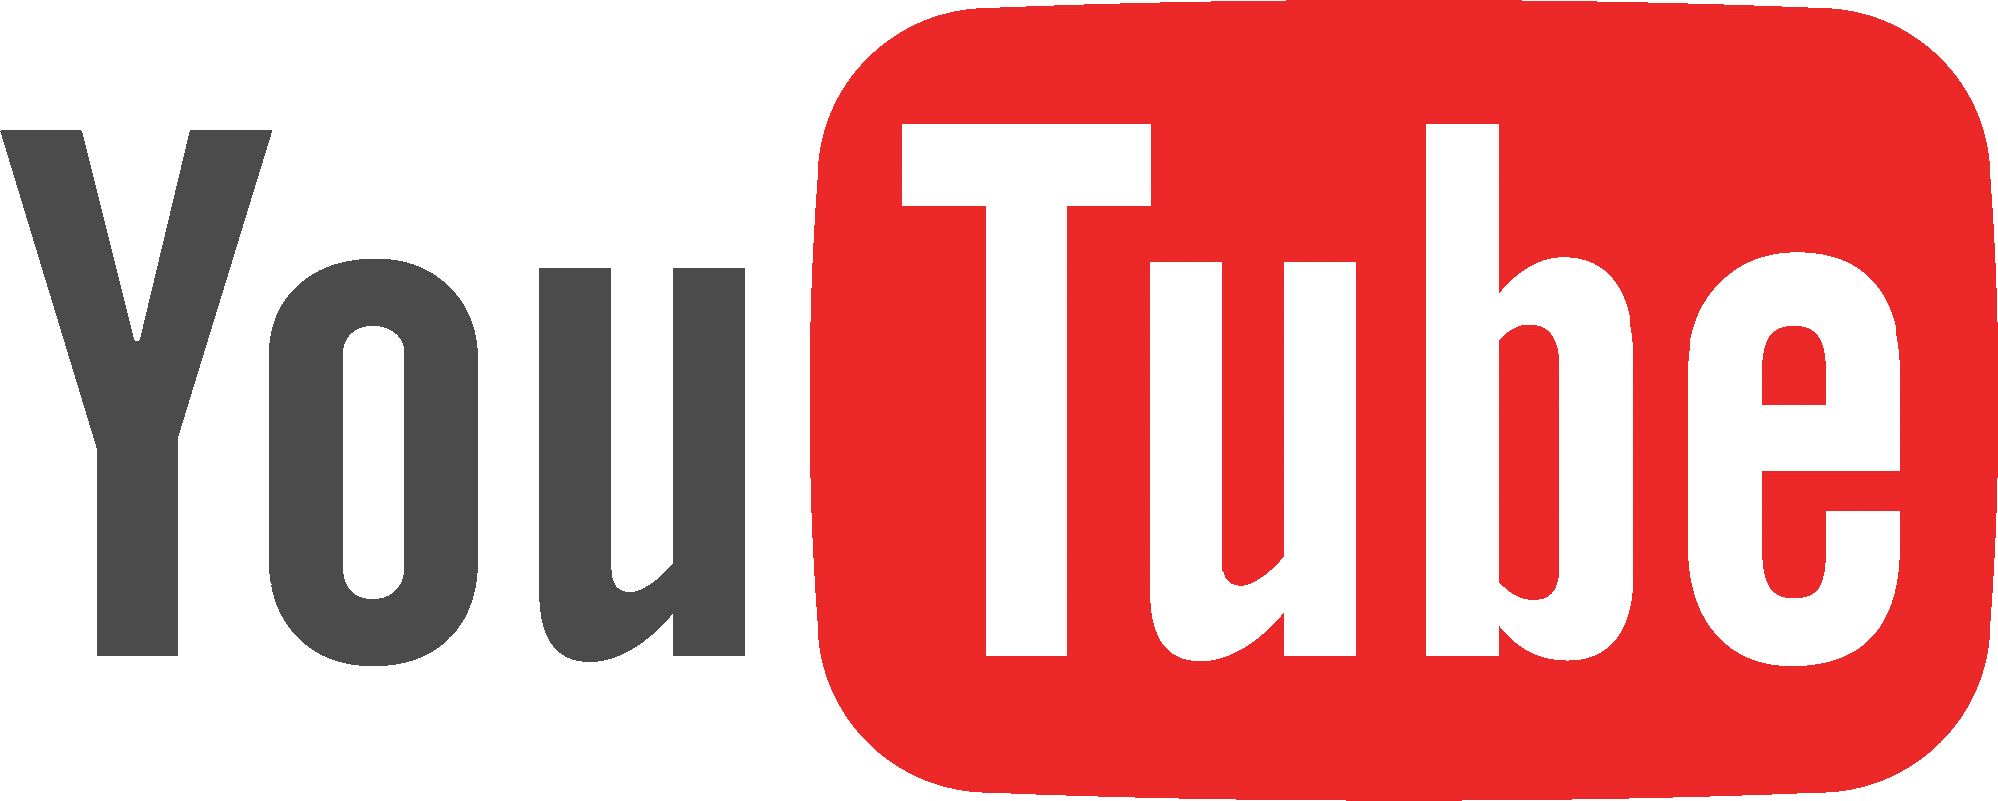 Youtube PNG - 6310